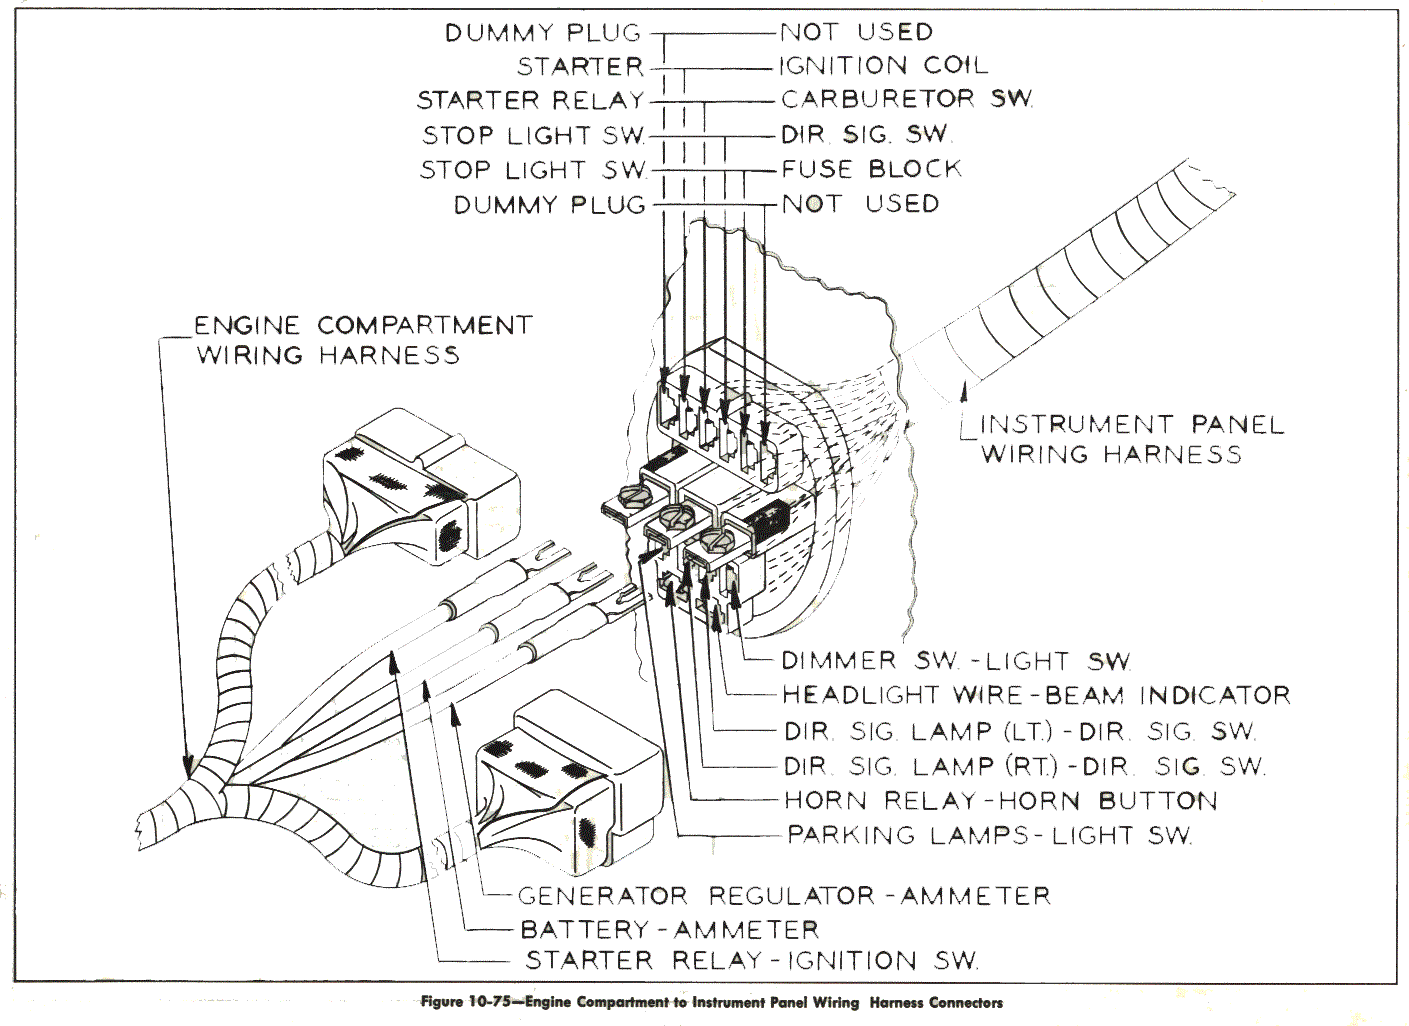 buick grand national engine wiring diagram 1957 buick wiring diagram | wiring library